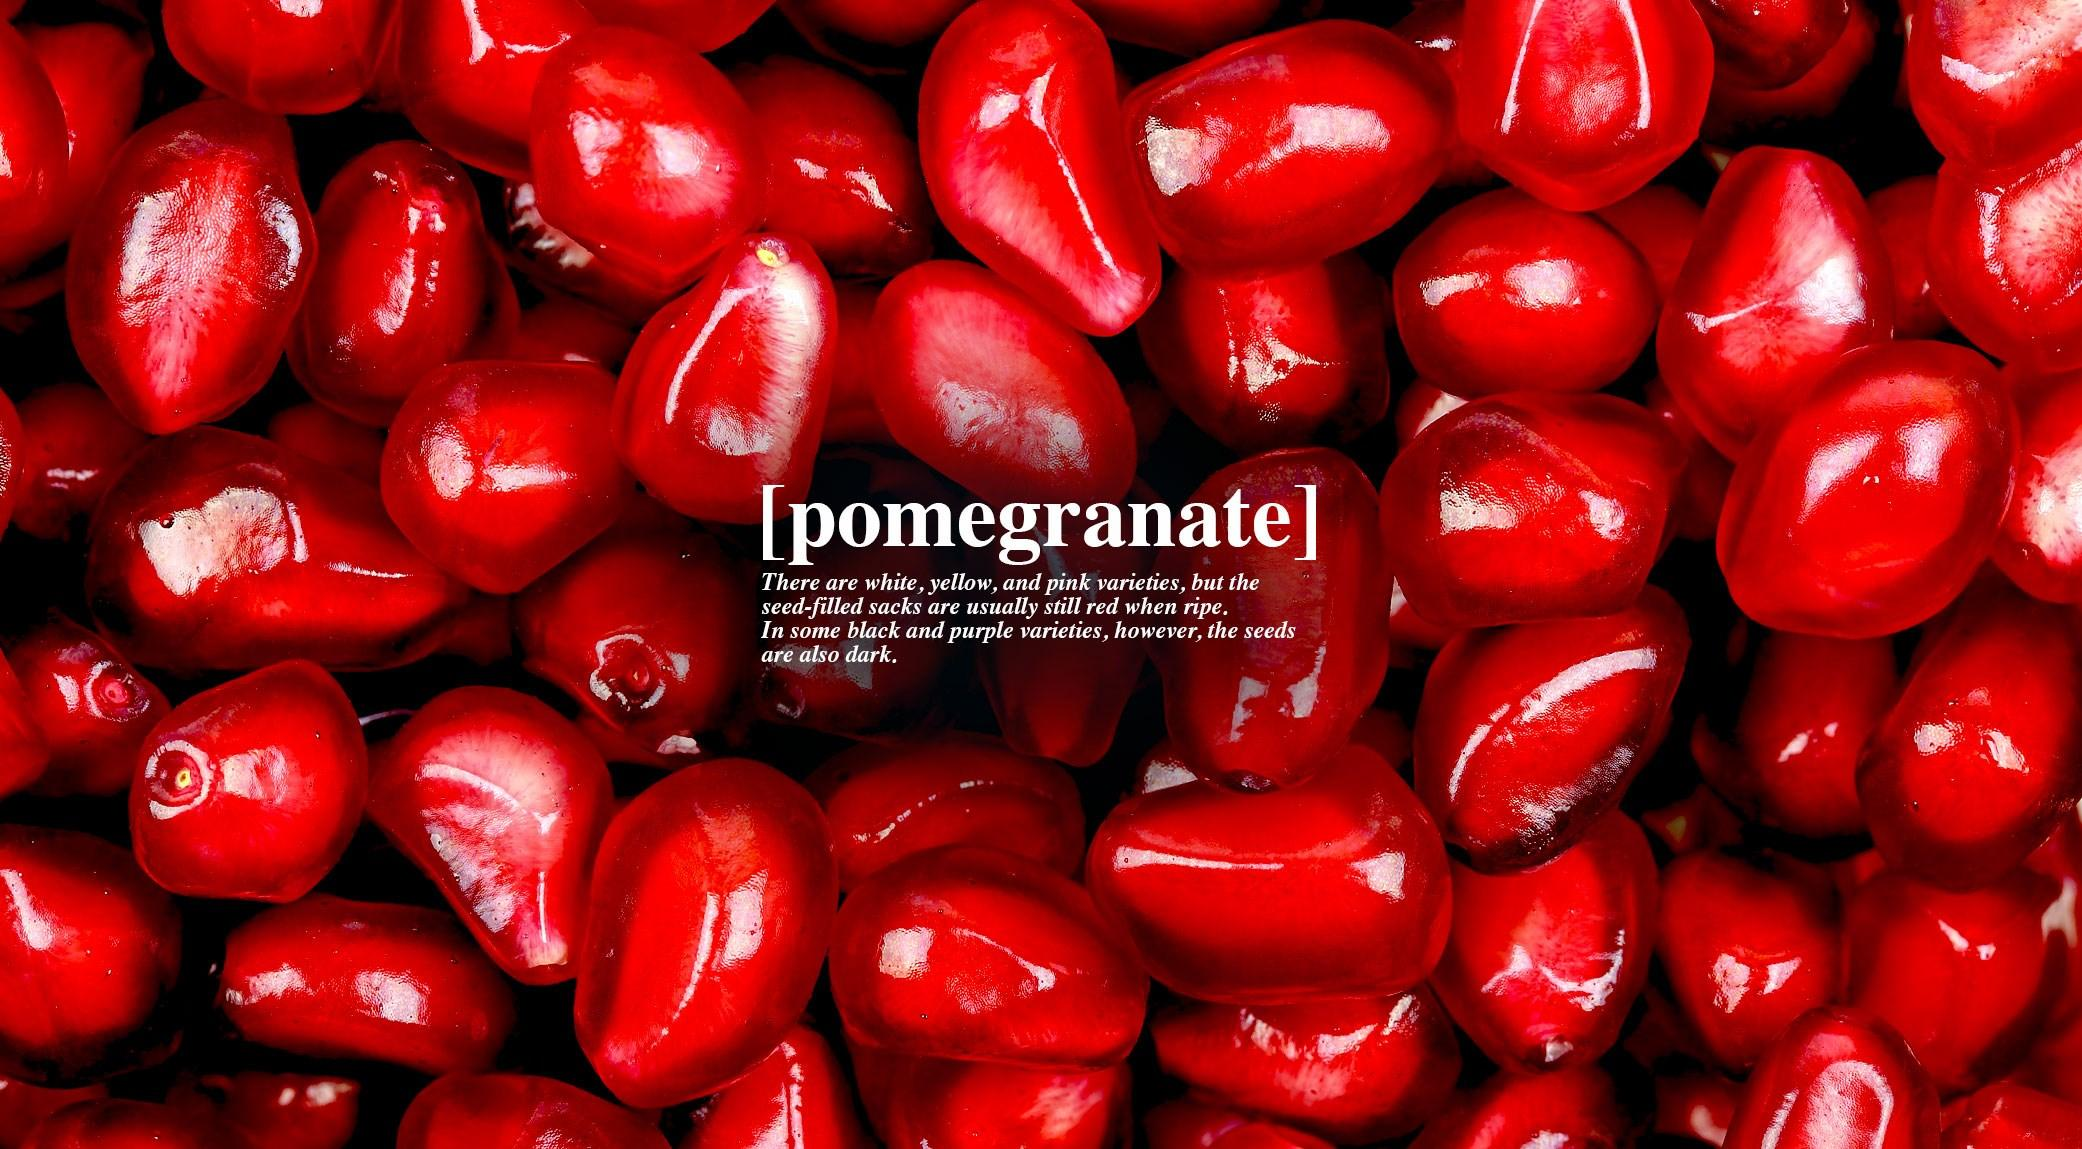 002-pomegranate-finedininglovers